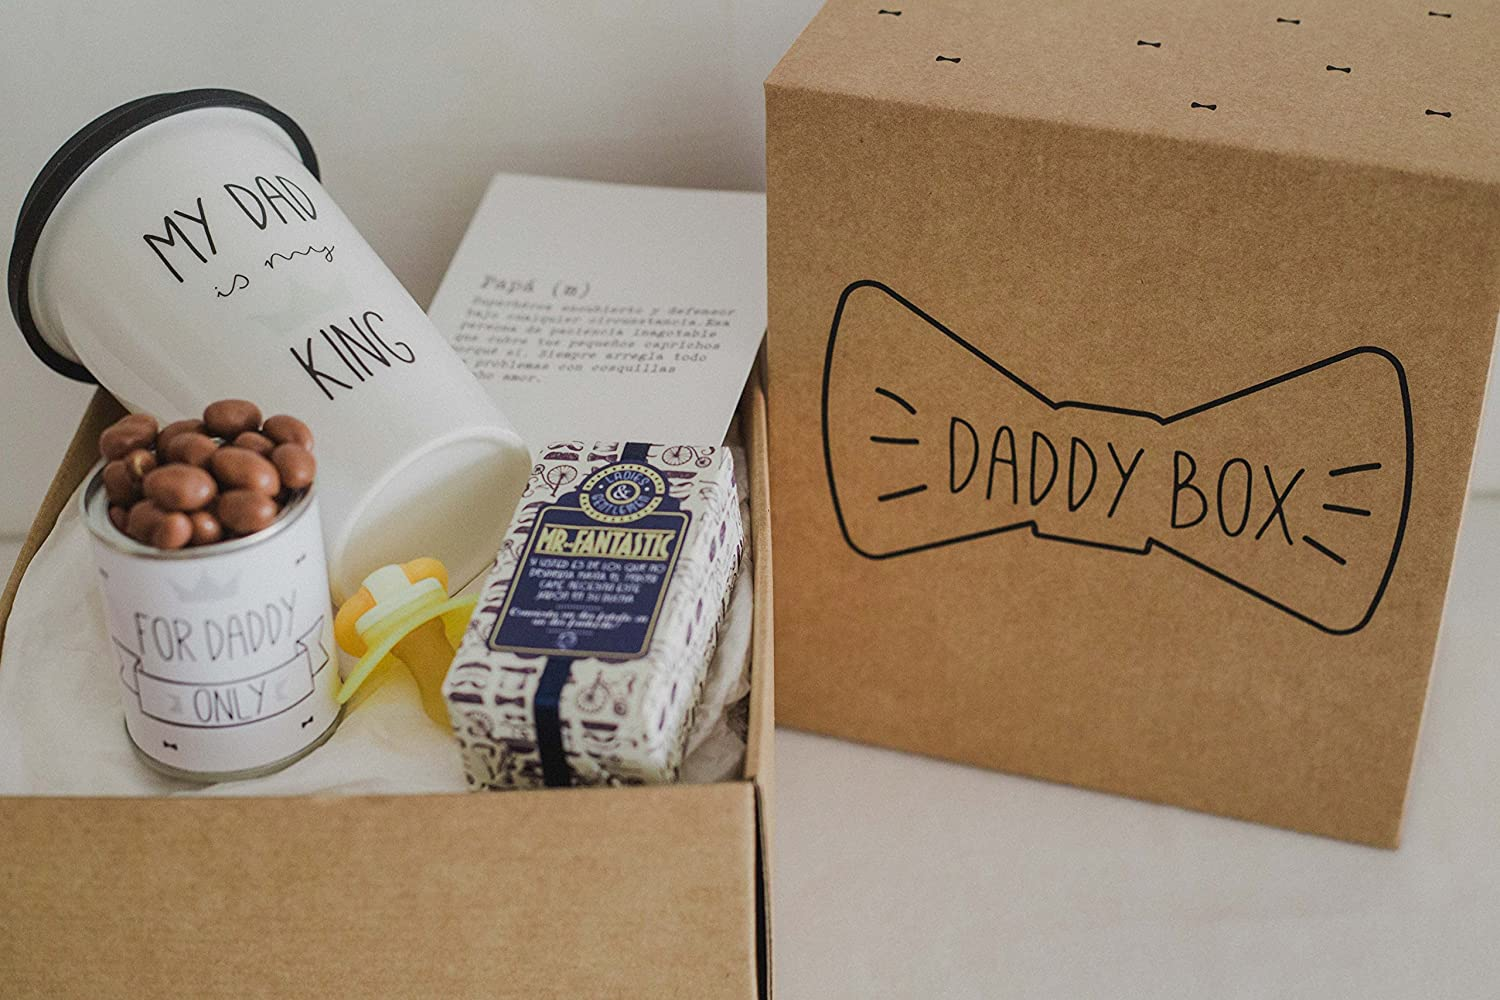 Regalo original bebé y papá / Daddy Box / idea regalos para papá y chupete bebé: Amazon.es: Bebé